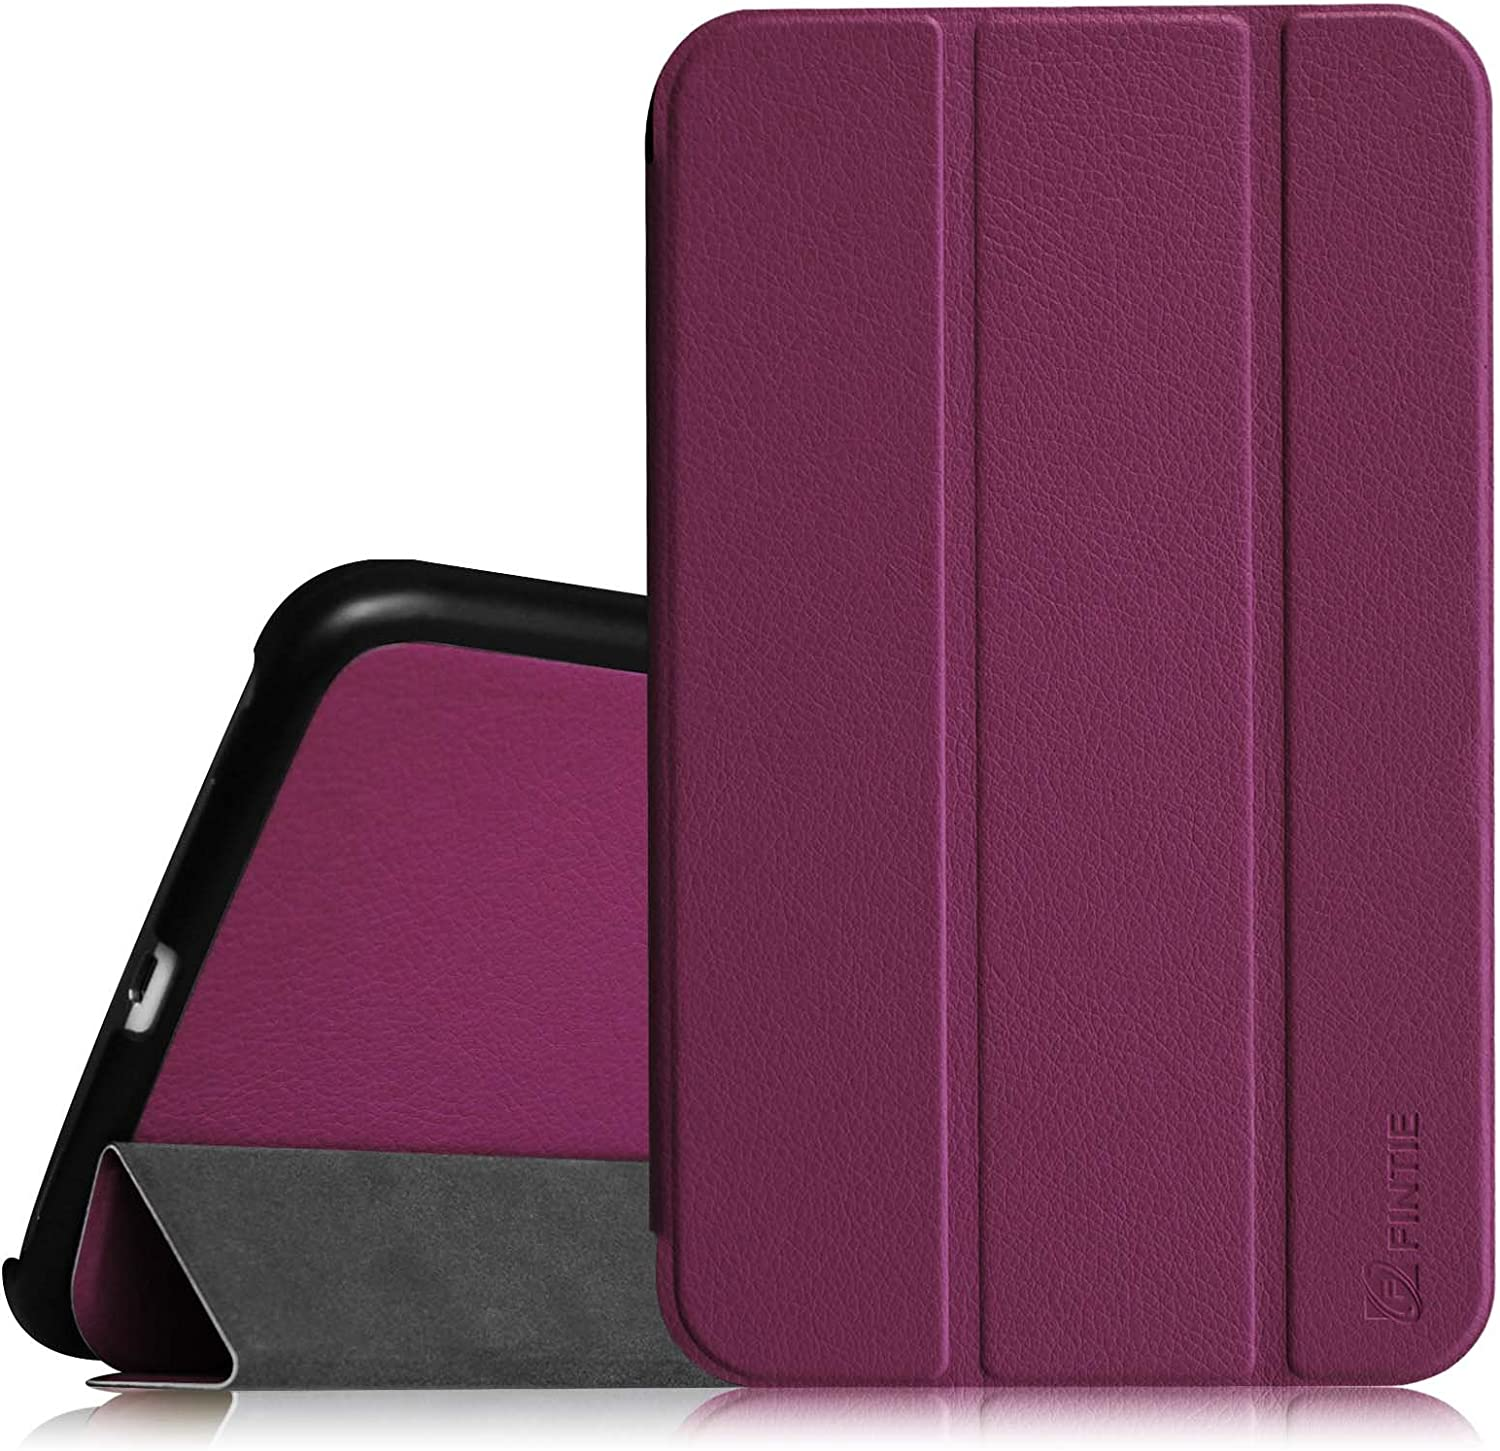 Fintie Slim Shell Case for Samsung Galaxy Tab 4 8.0 (8-Inch) Case - Ultra Lightweight Protective Stand Cover with Auto Sleep/Wake Feature, Purple